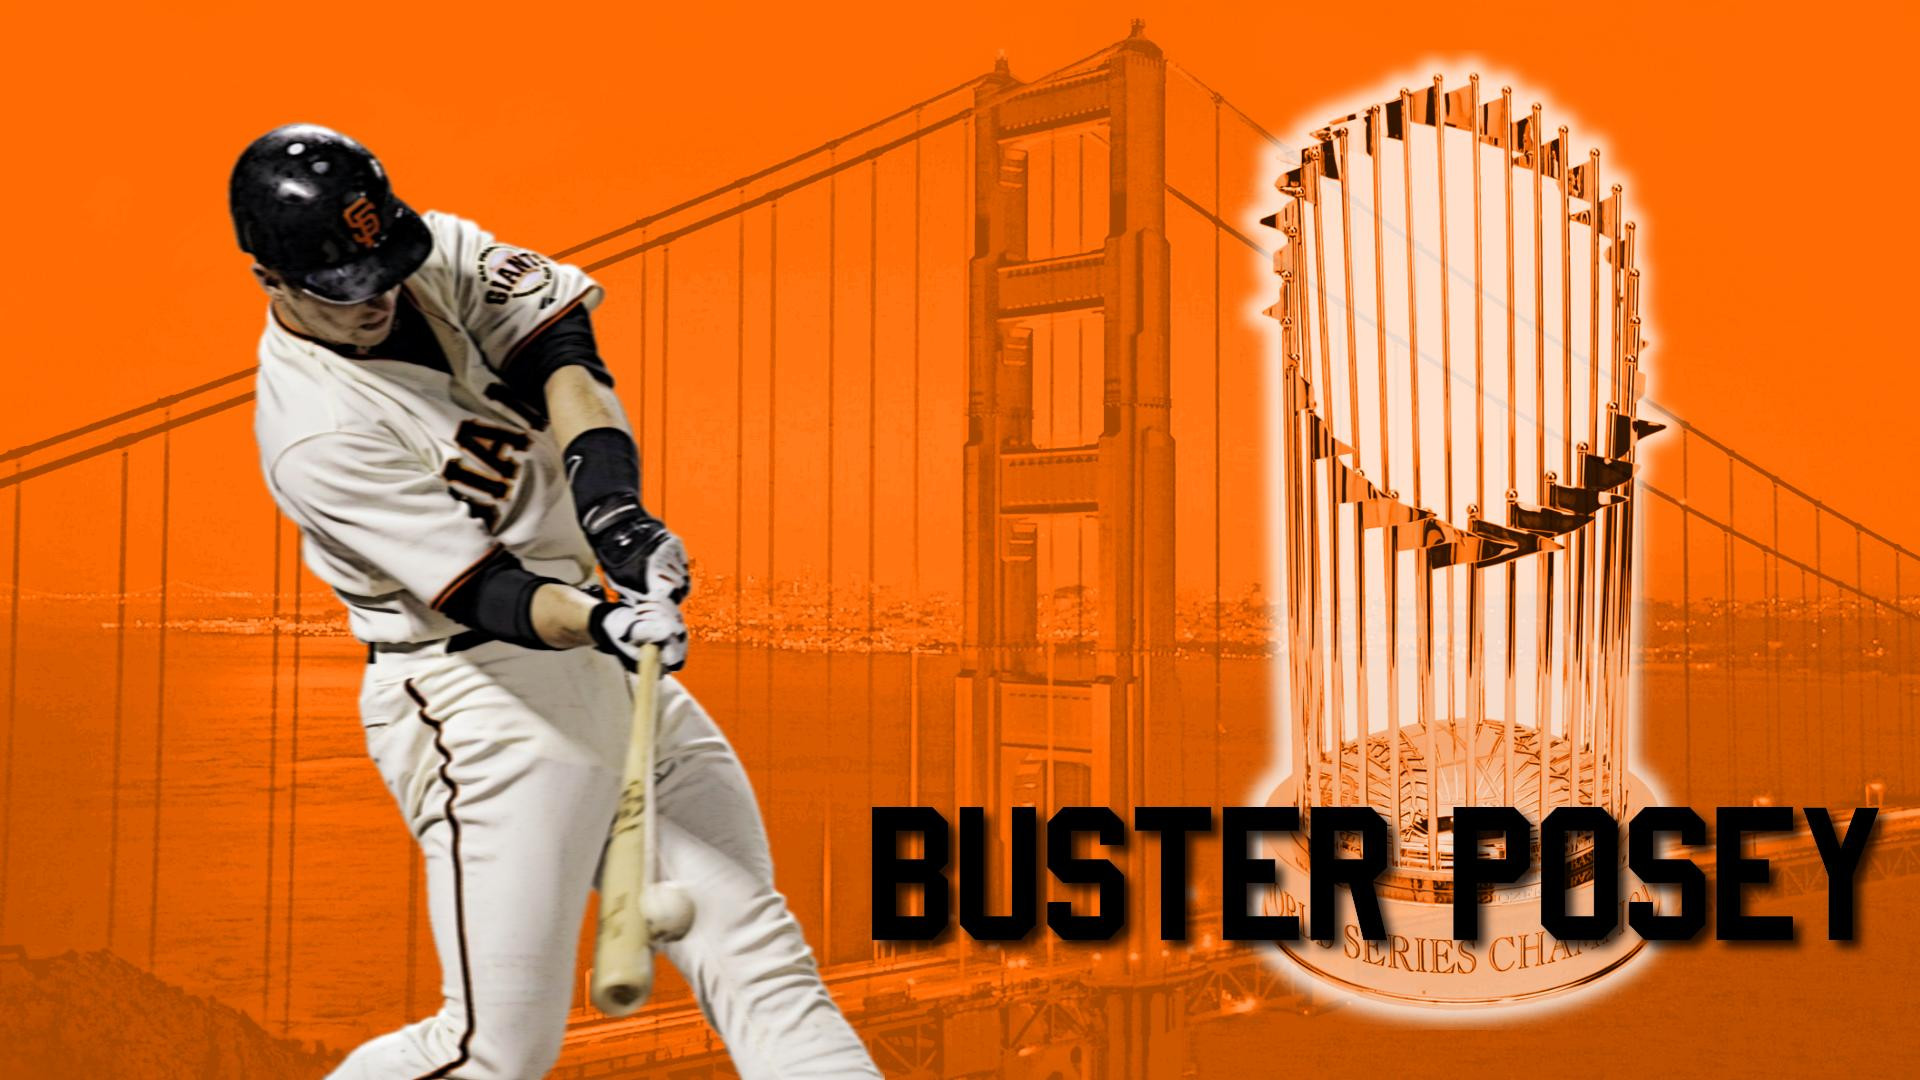 Buster Posey San Francisco Giants Wallpaper Download Logo And 1920x1080